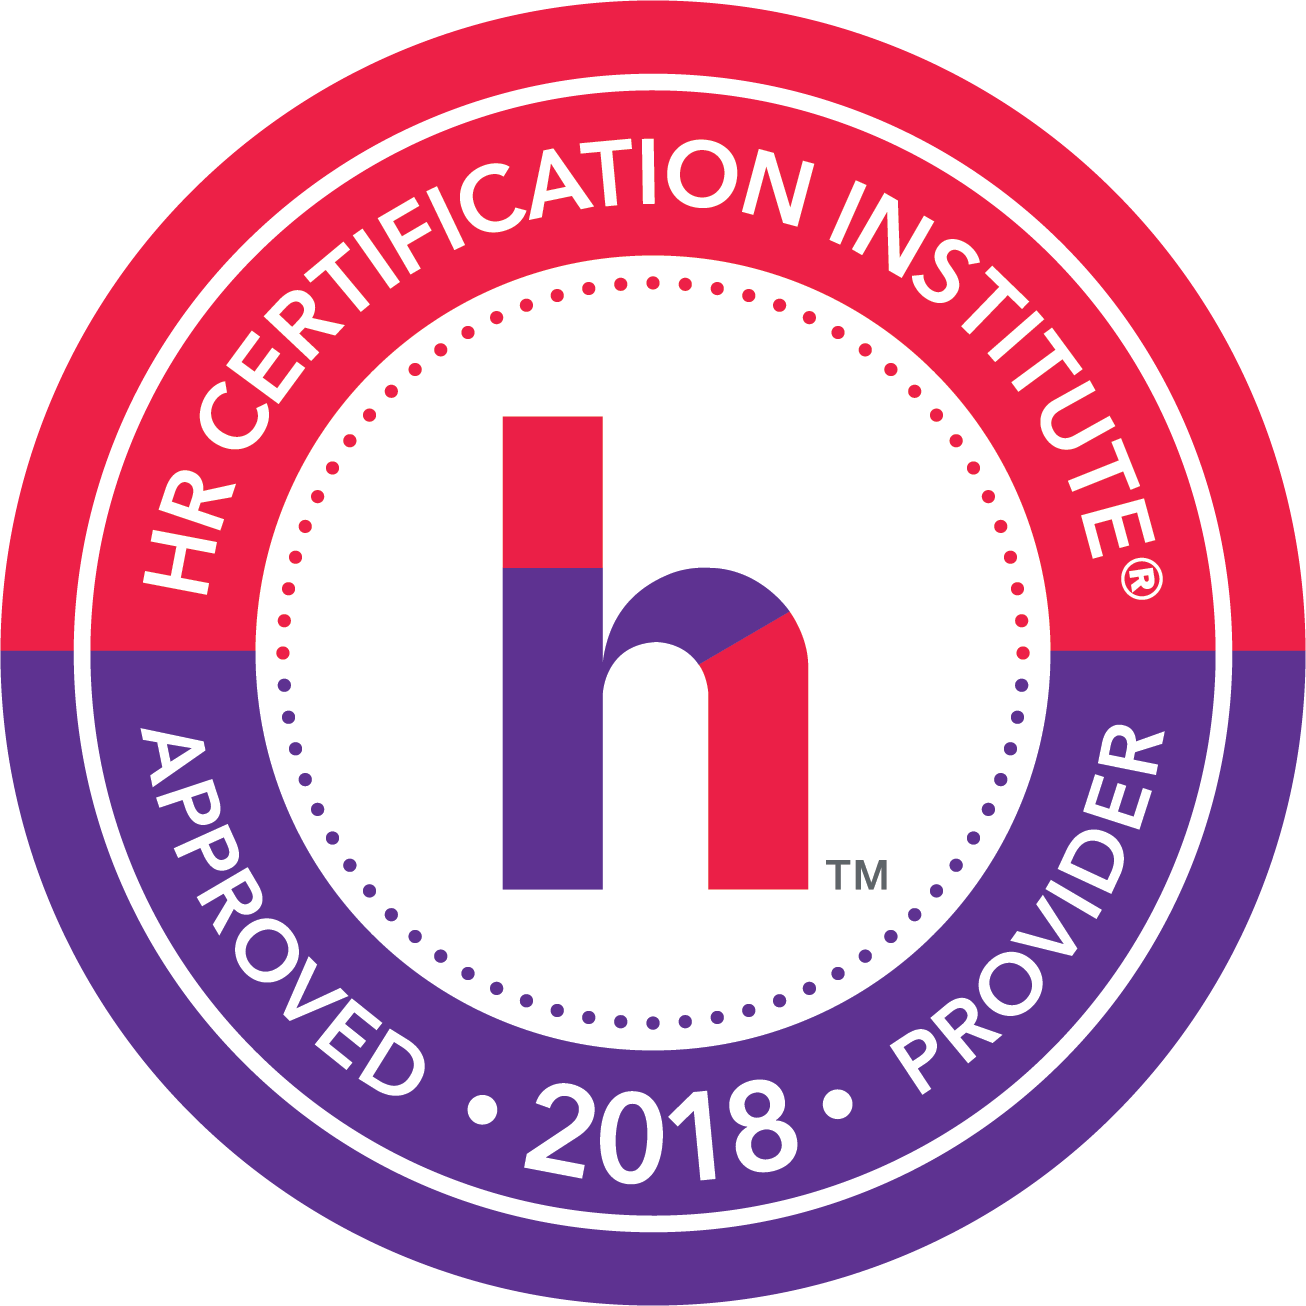 HRCI seal of approval